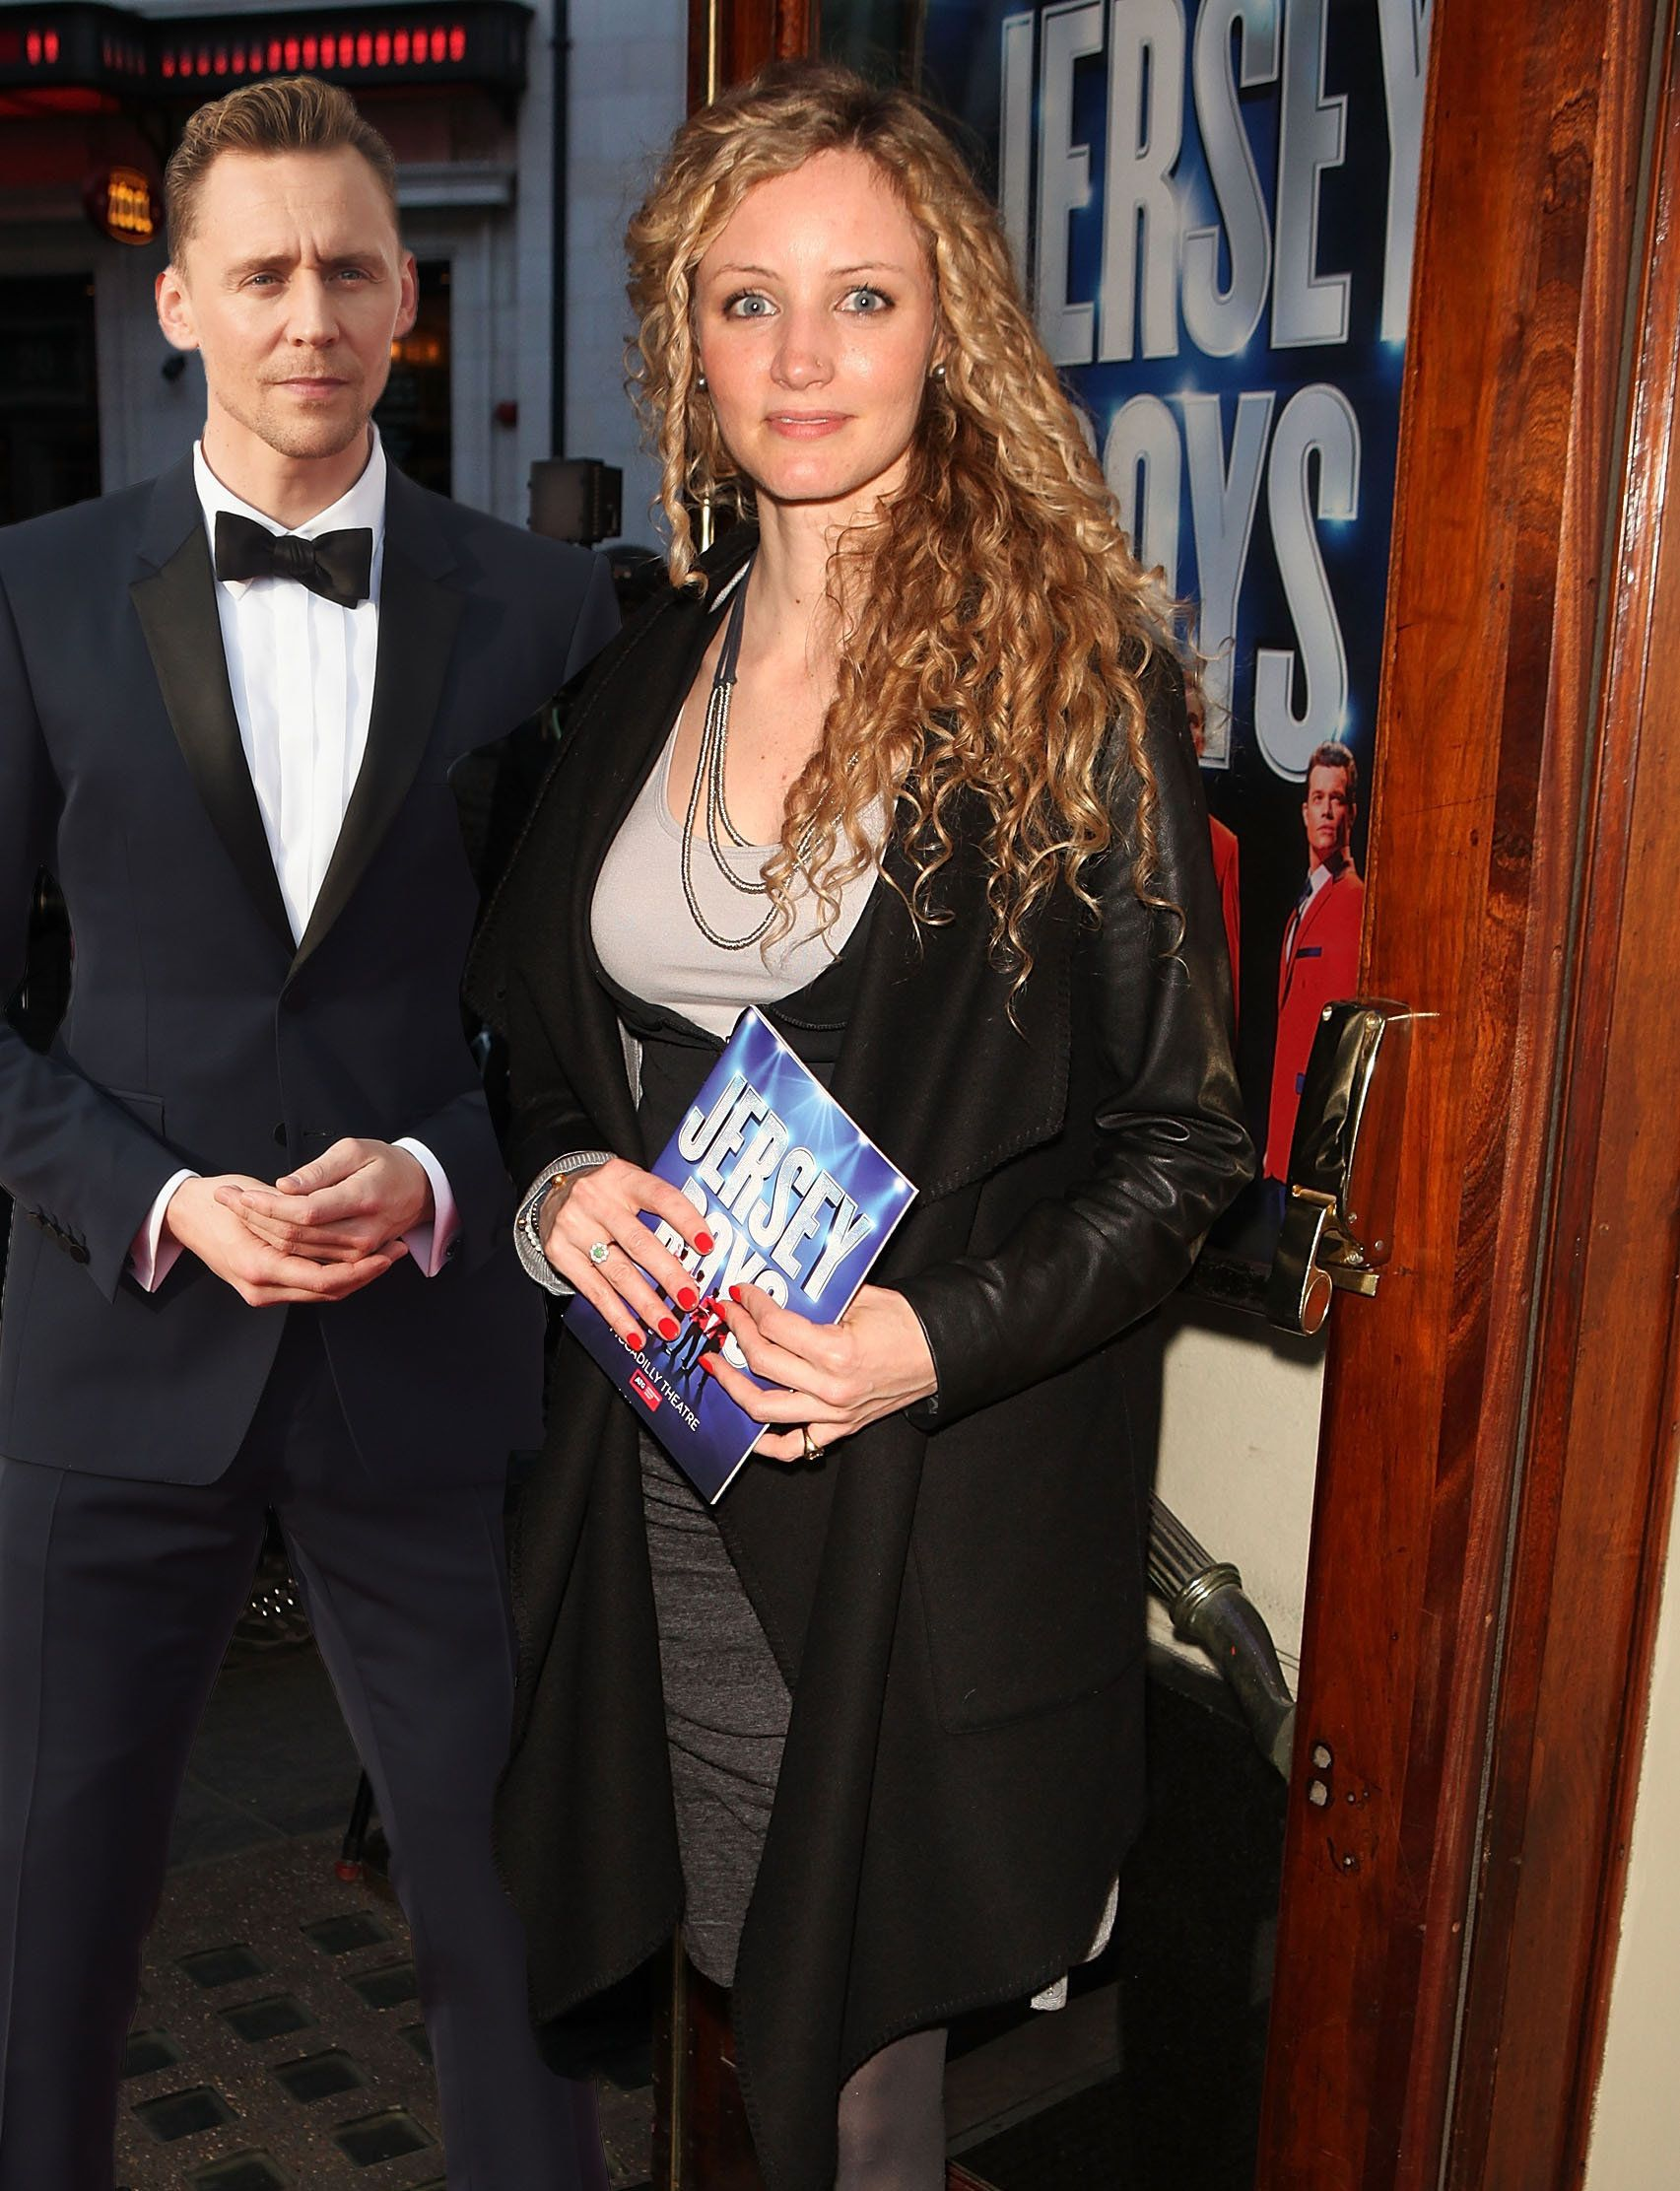 Noted Historian Dr Suzannah Lipscomb Leaves Club With